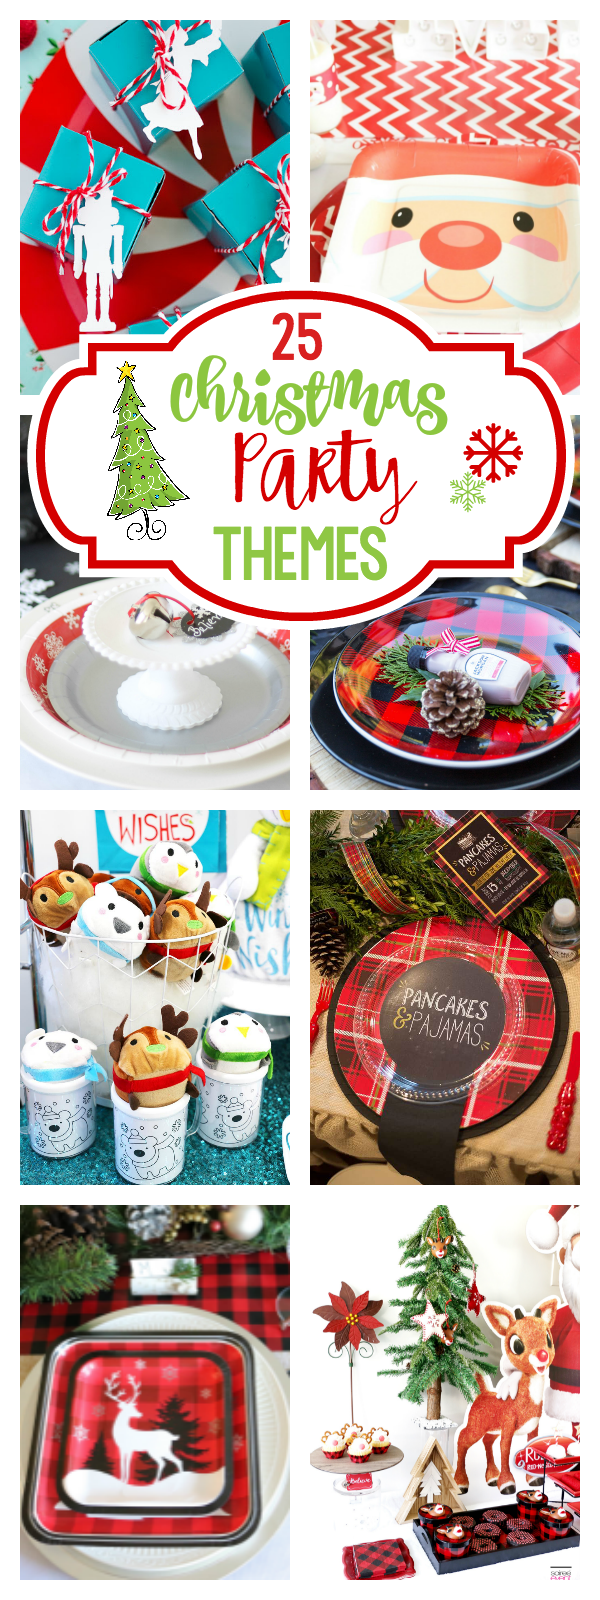 25 christmas party theme ideas and party ideas to throw the best holiday party this year